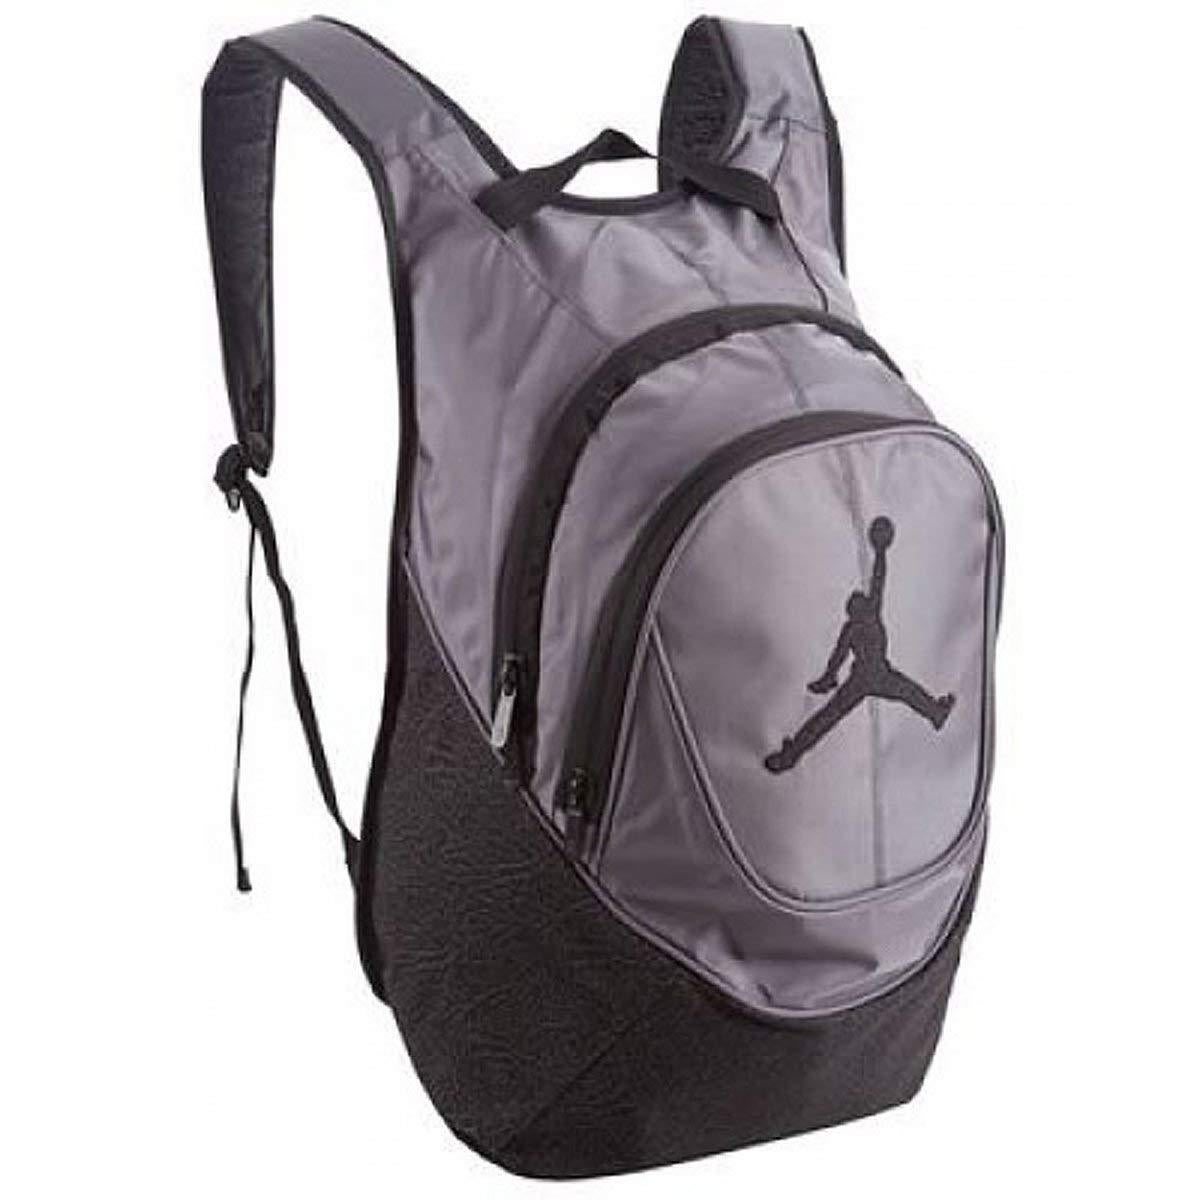 9b9fecf03643 Shop Nike Jordan Jumpman Elementary Elephant Print Students Large Backpack  with Laptop Sleeve 9A1414 - Free Shipping On Orders Over  45 - Overstock -  ...